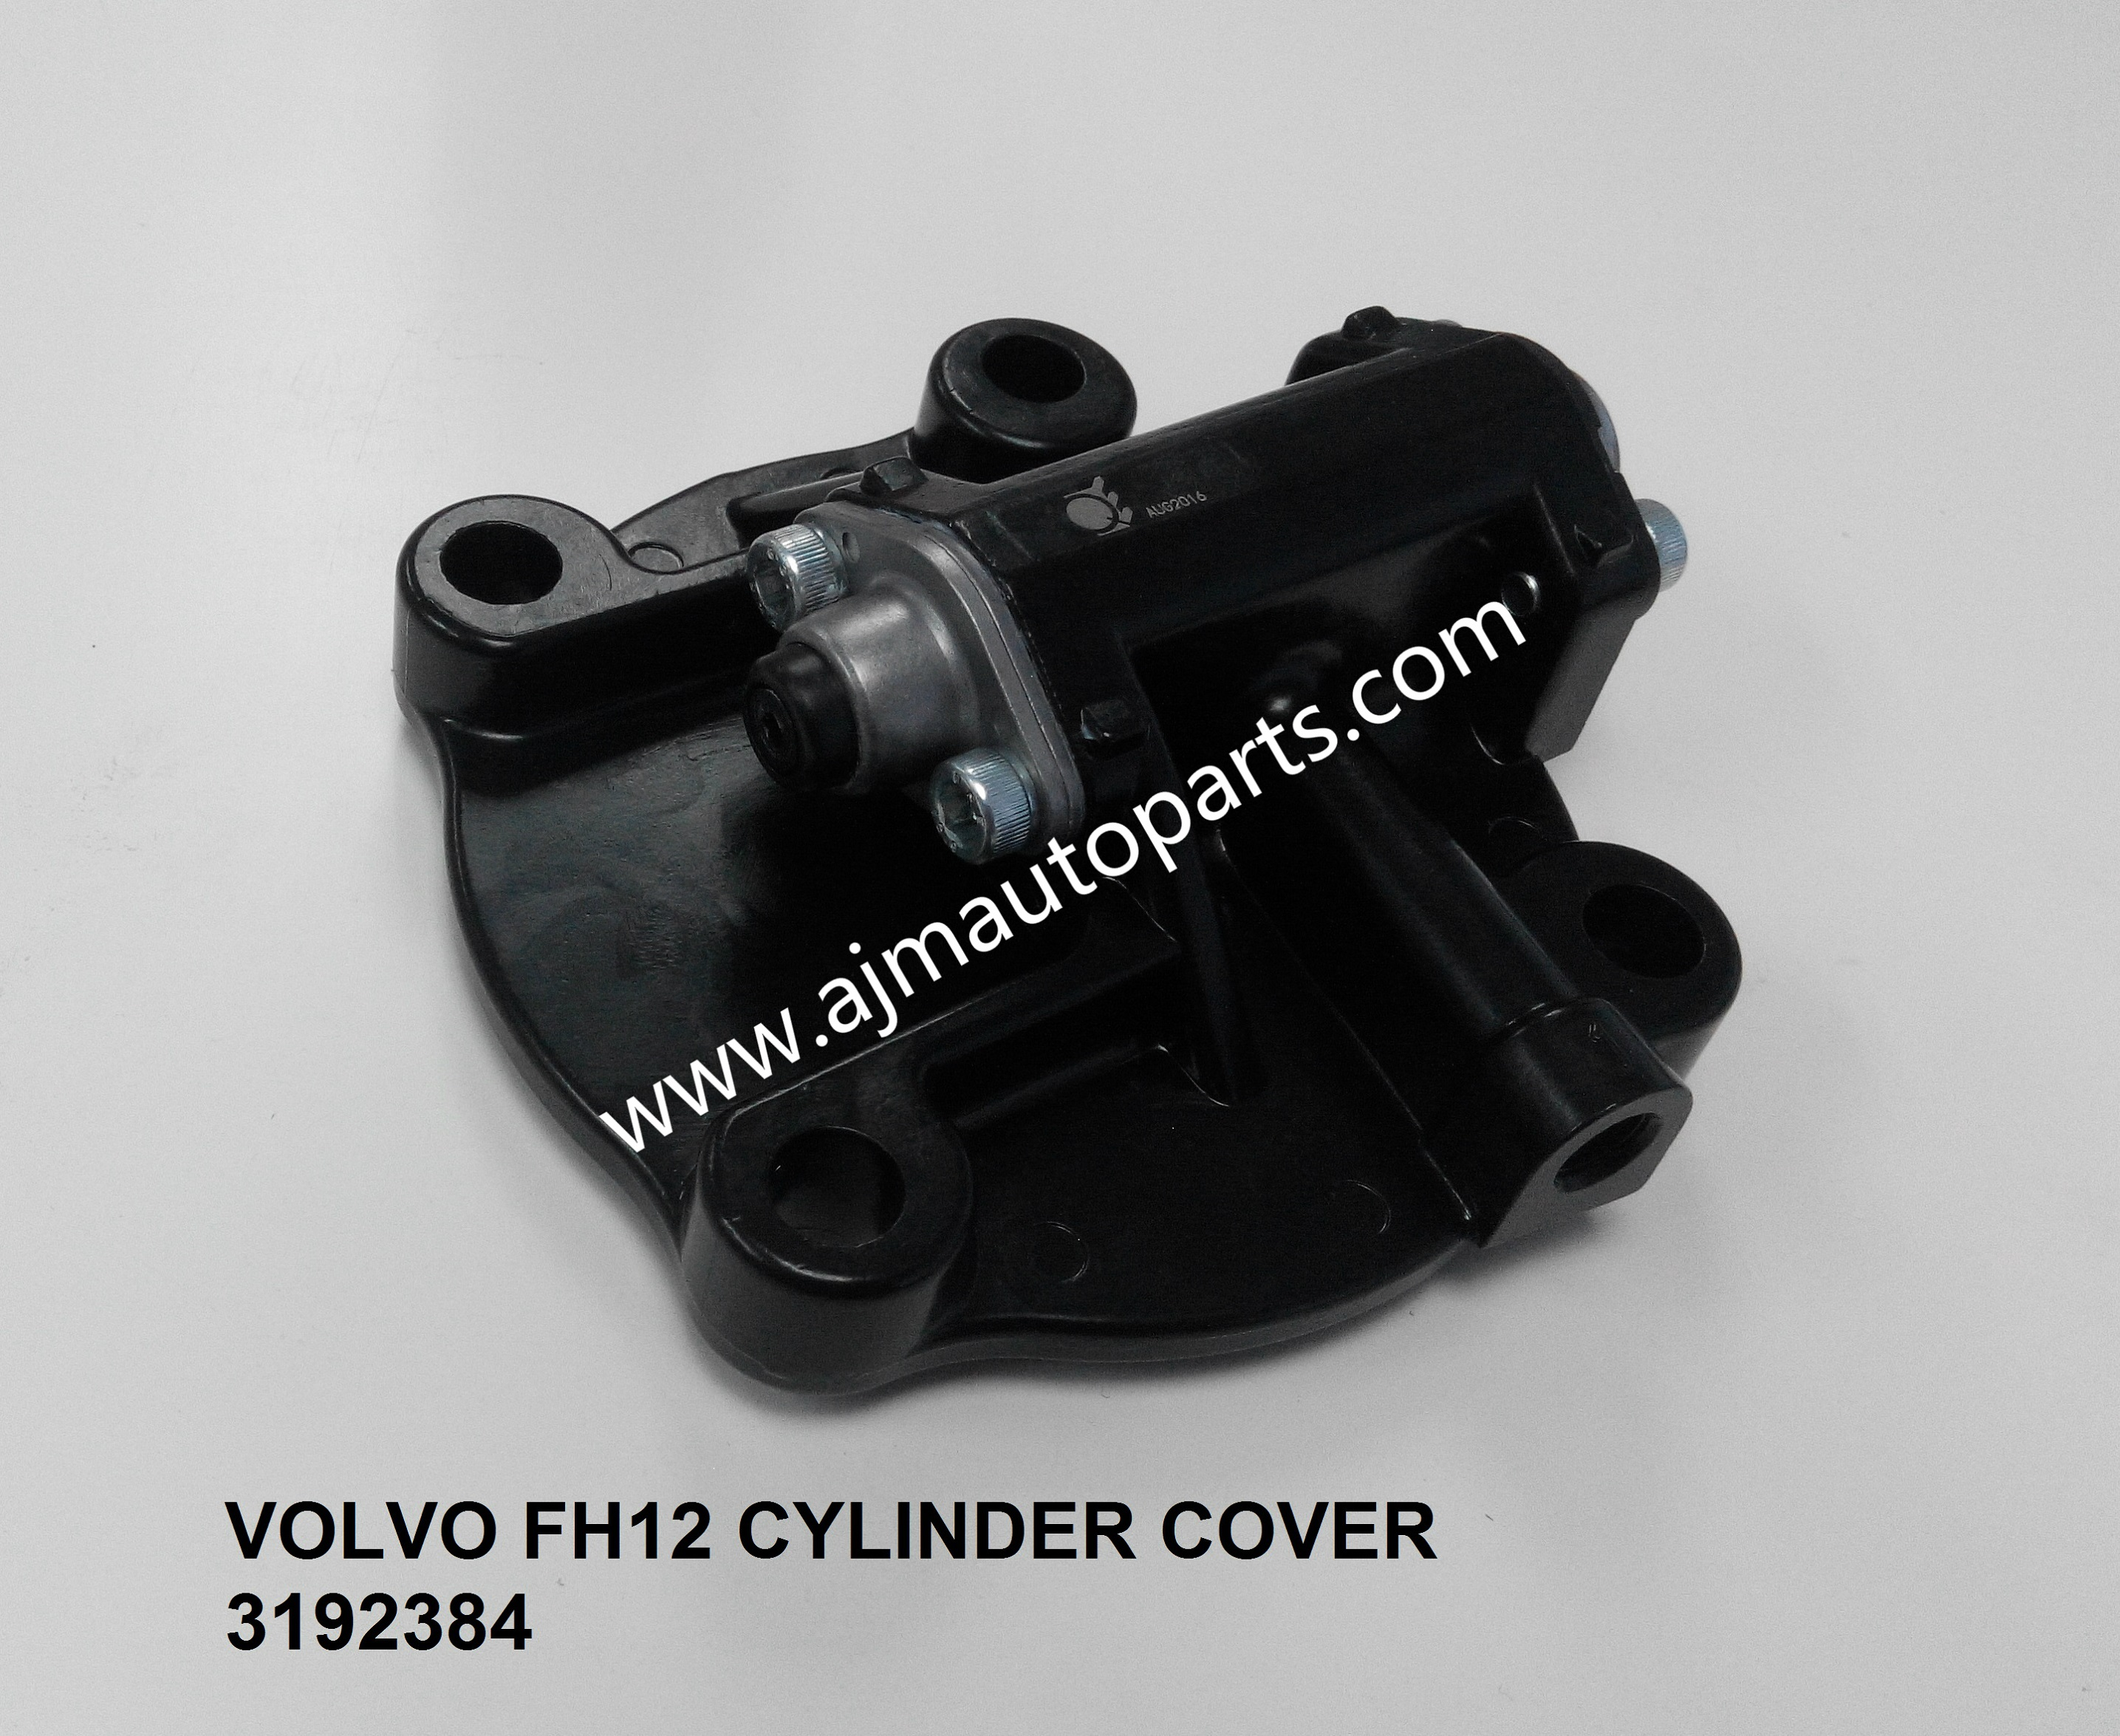 VOLVO FH12 CYLINDER COVER-3192384